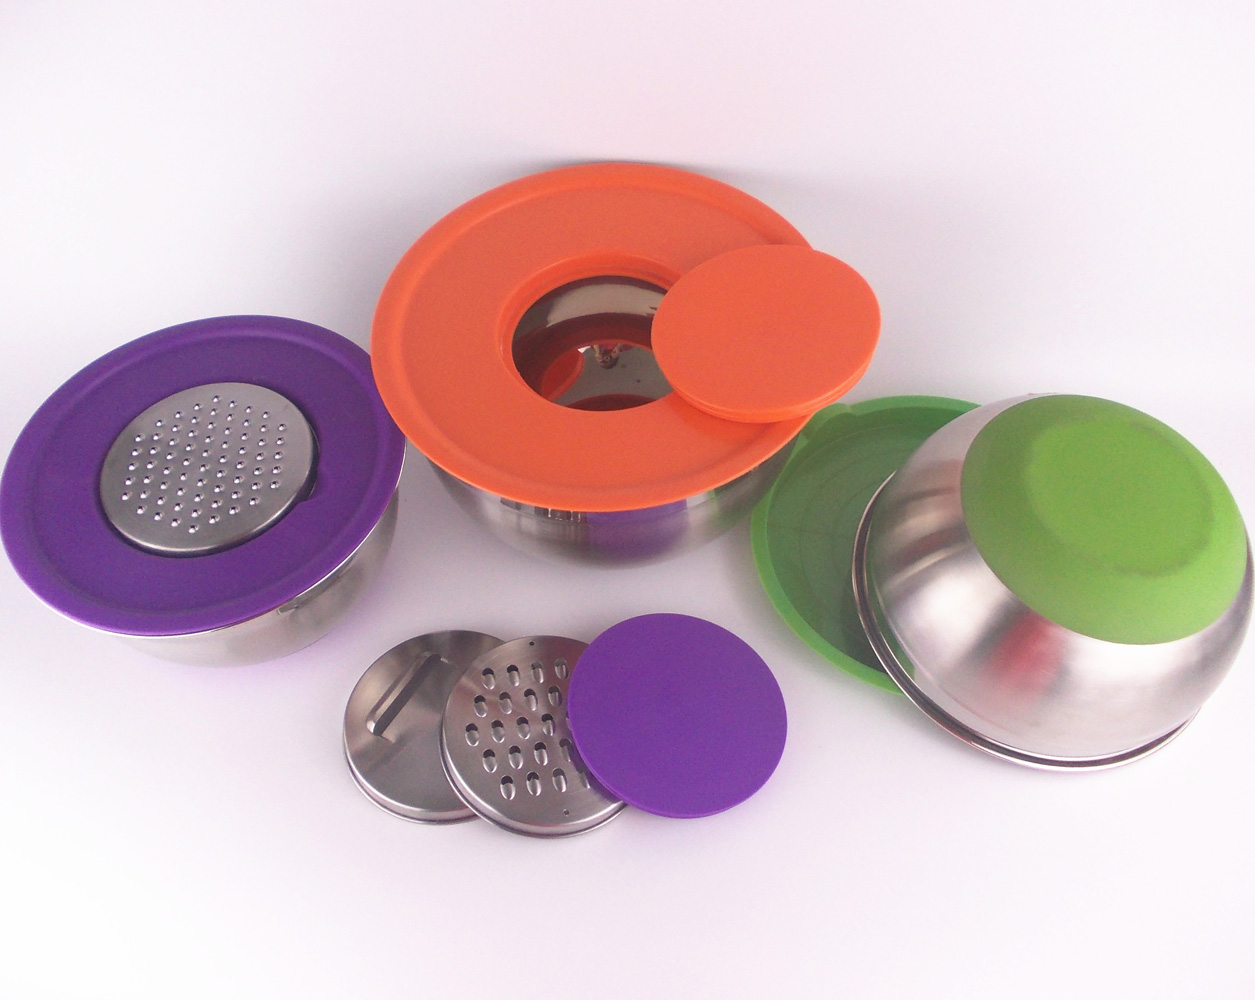 Multifunctional Online Hotsales Stainless Steel Mixing Nesting Salad Cutter Bowls Sets with Grater